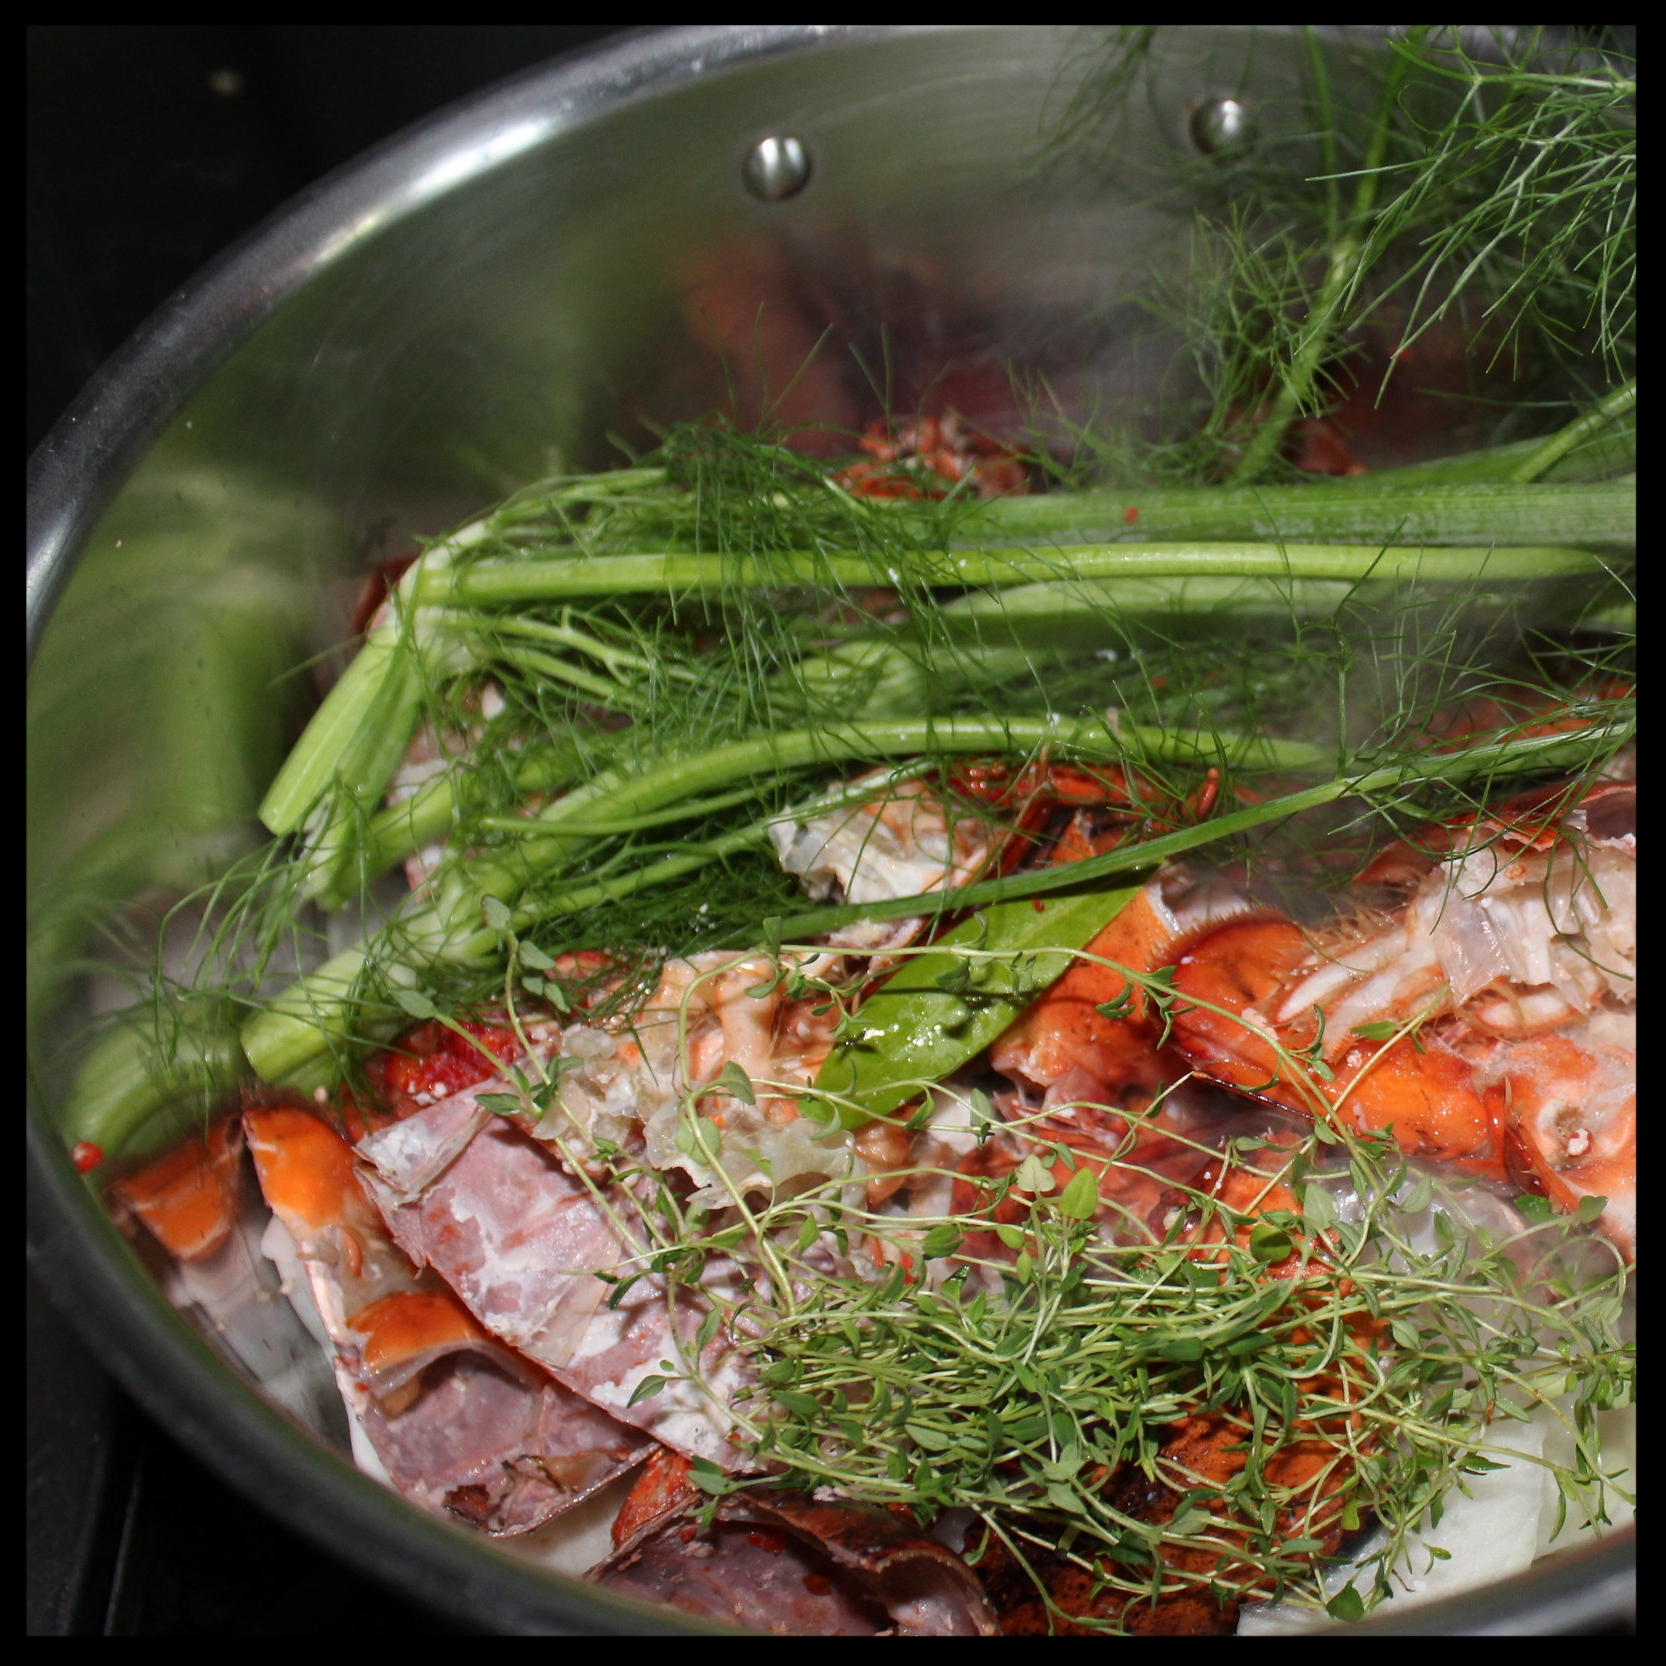 INSTRUCTIONS:   1.  Cut lobster shells into 2-3 inch pieces with kitchen shears  2.  Drizzle 2 TB olive oil into a large stockpot with heat on medium-high.  3.  Throw in the shells, onion, garlic, and pepper flakes and stir periodically until onions are limp and translucent, but not brown.  4.  Add the thyme and bay leaves as well as the fennel fronds, and stir to mix.